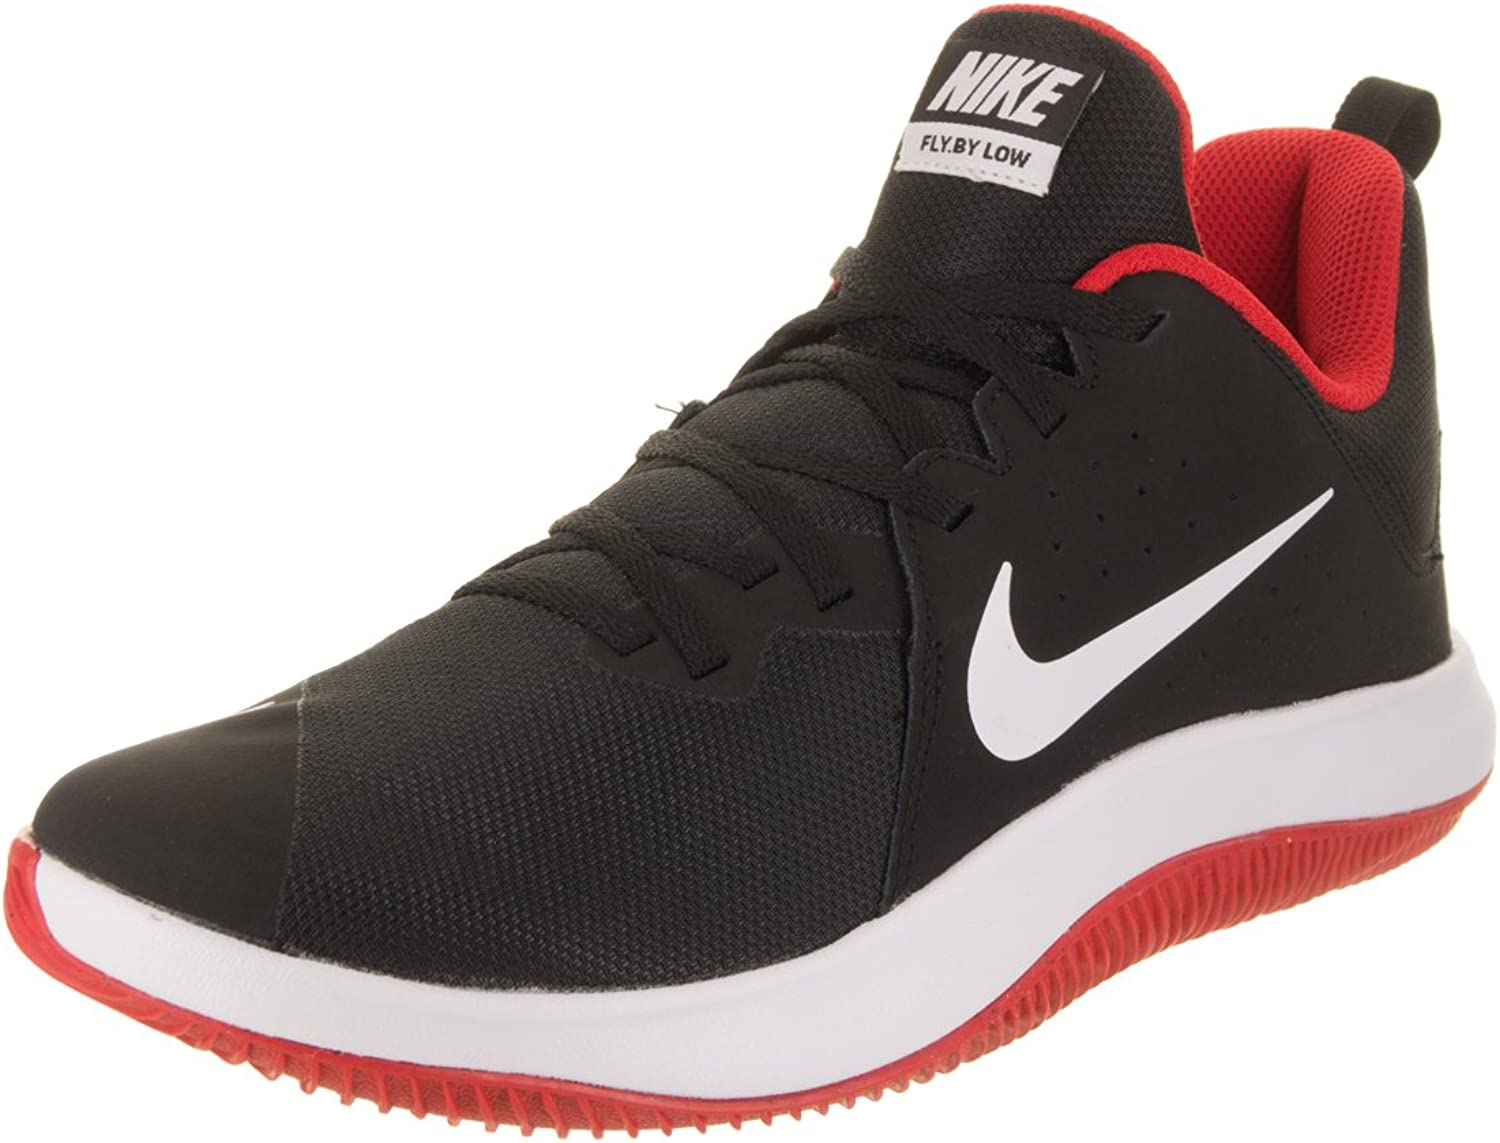 Nike Men's Fly.by Low Basketball shoes